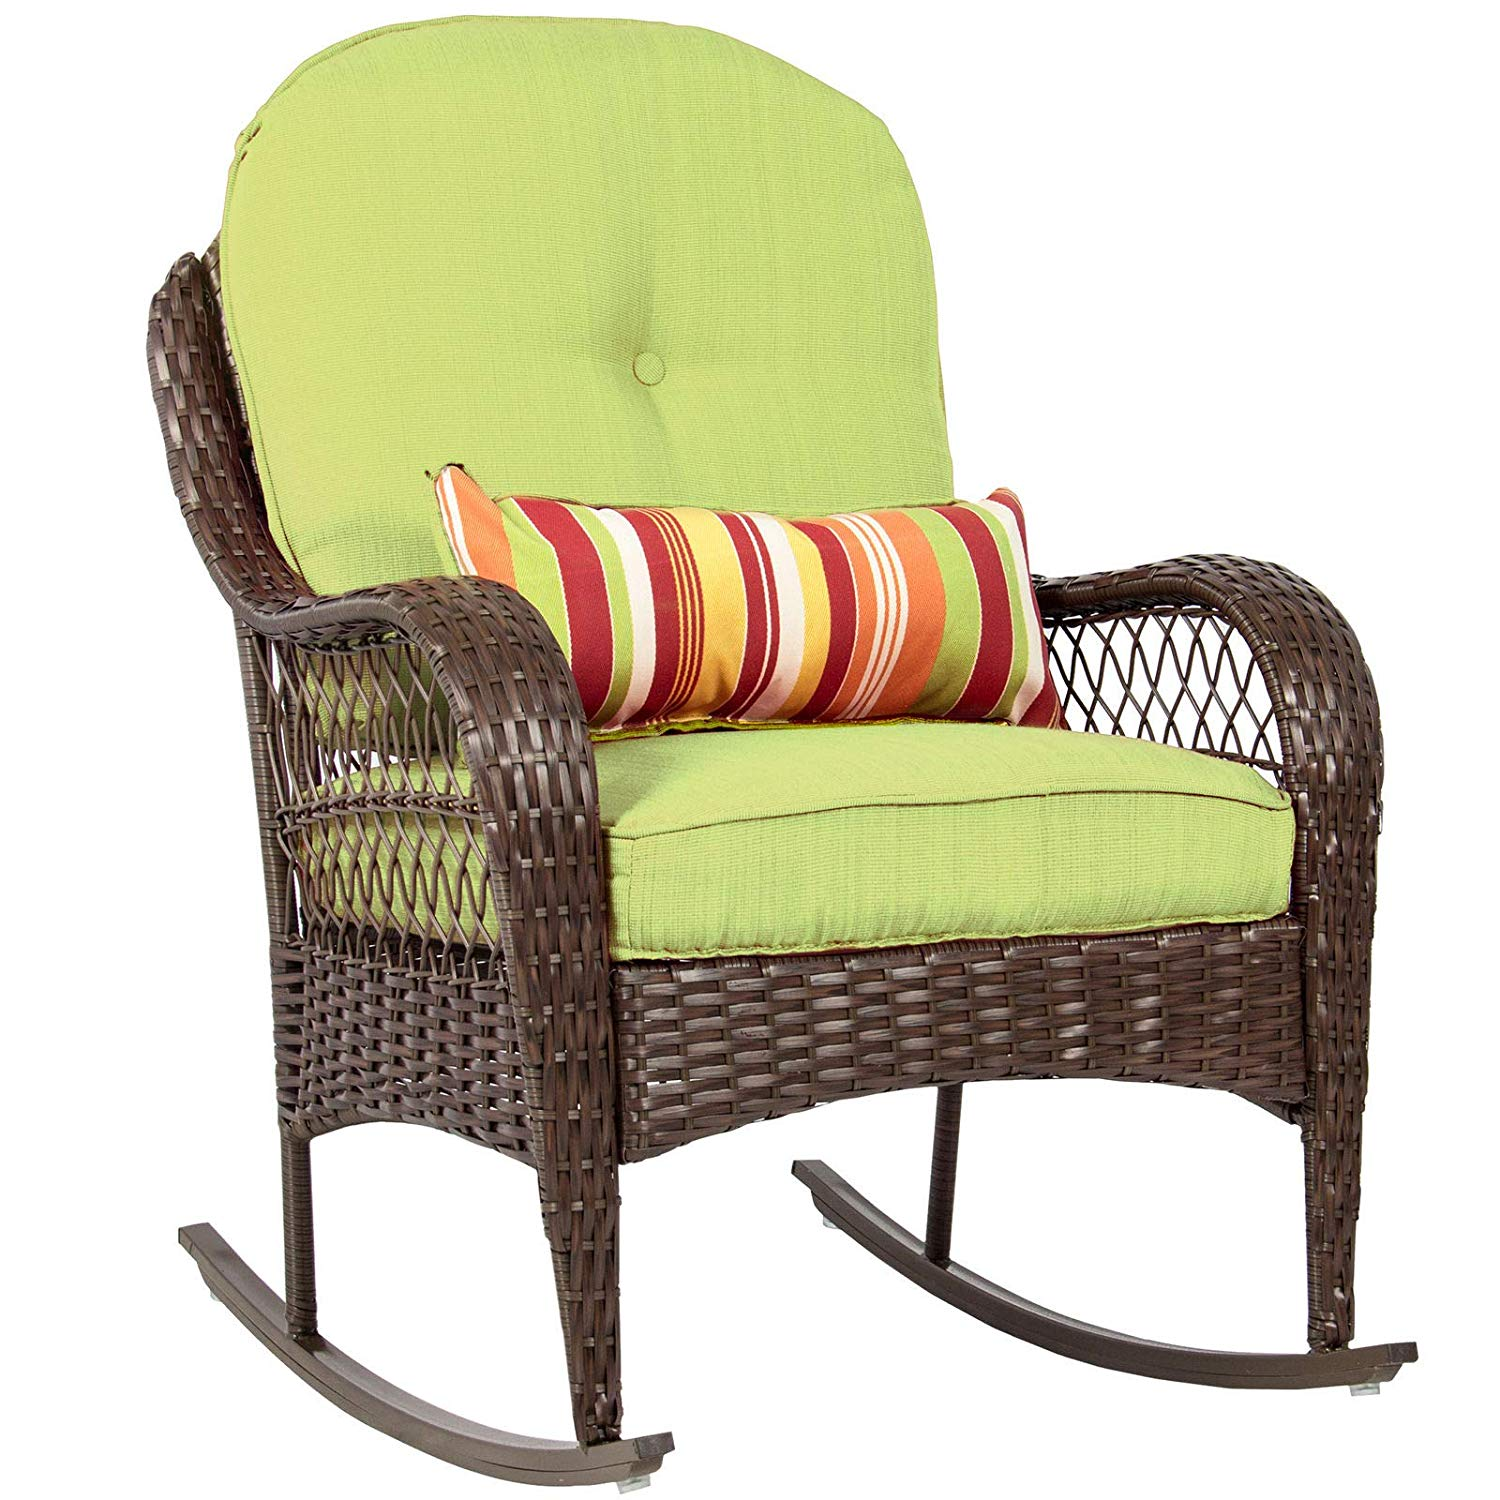 Buy Dzvex Wicker Rocking Chair Patio Porch Deck Furniture Weather